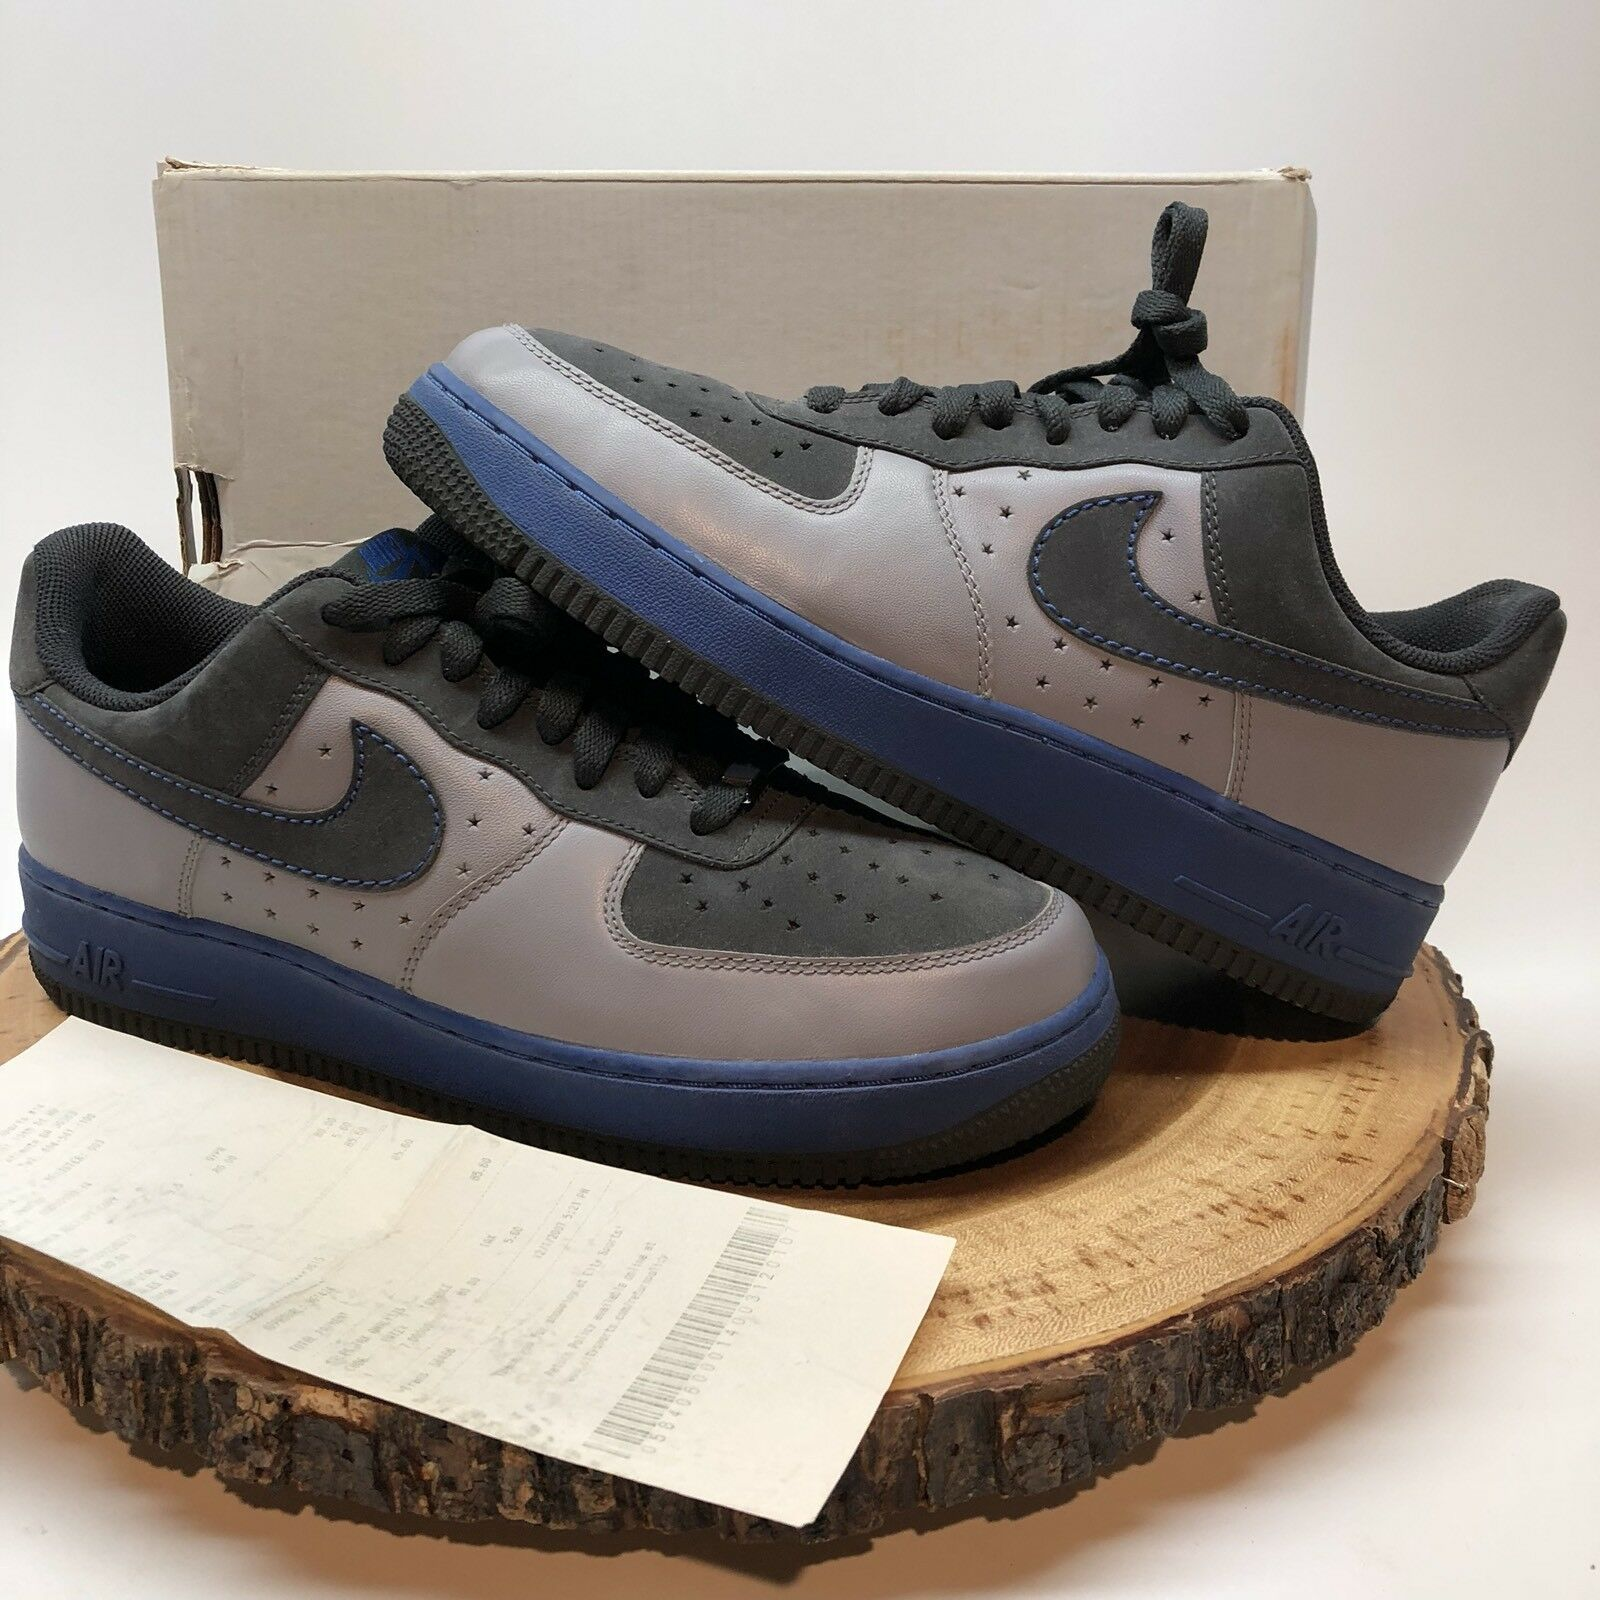 Nike Air Force Force Force One Low Premium AF1 317295 001 2 Charles Barkley CB34 059582